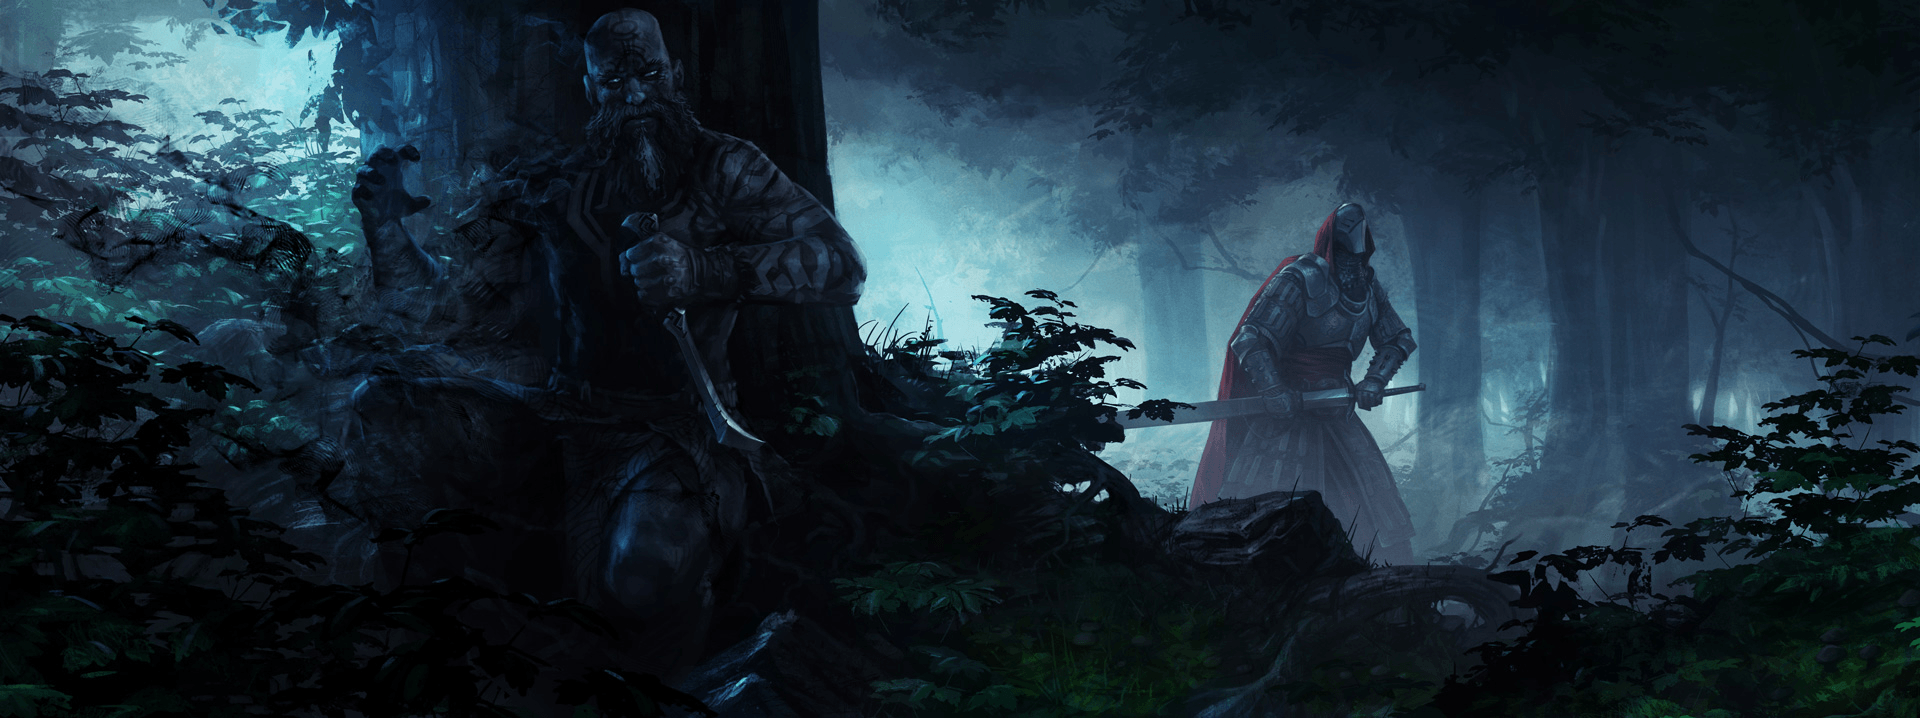 Shadows Expansion for Endless Legend Available Today news header